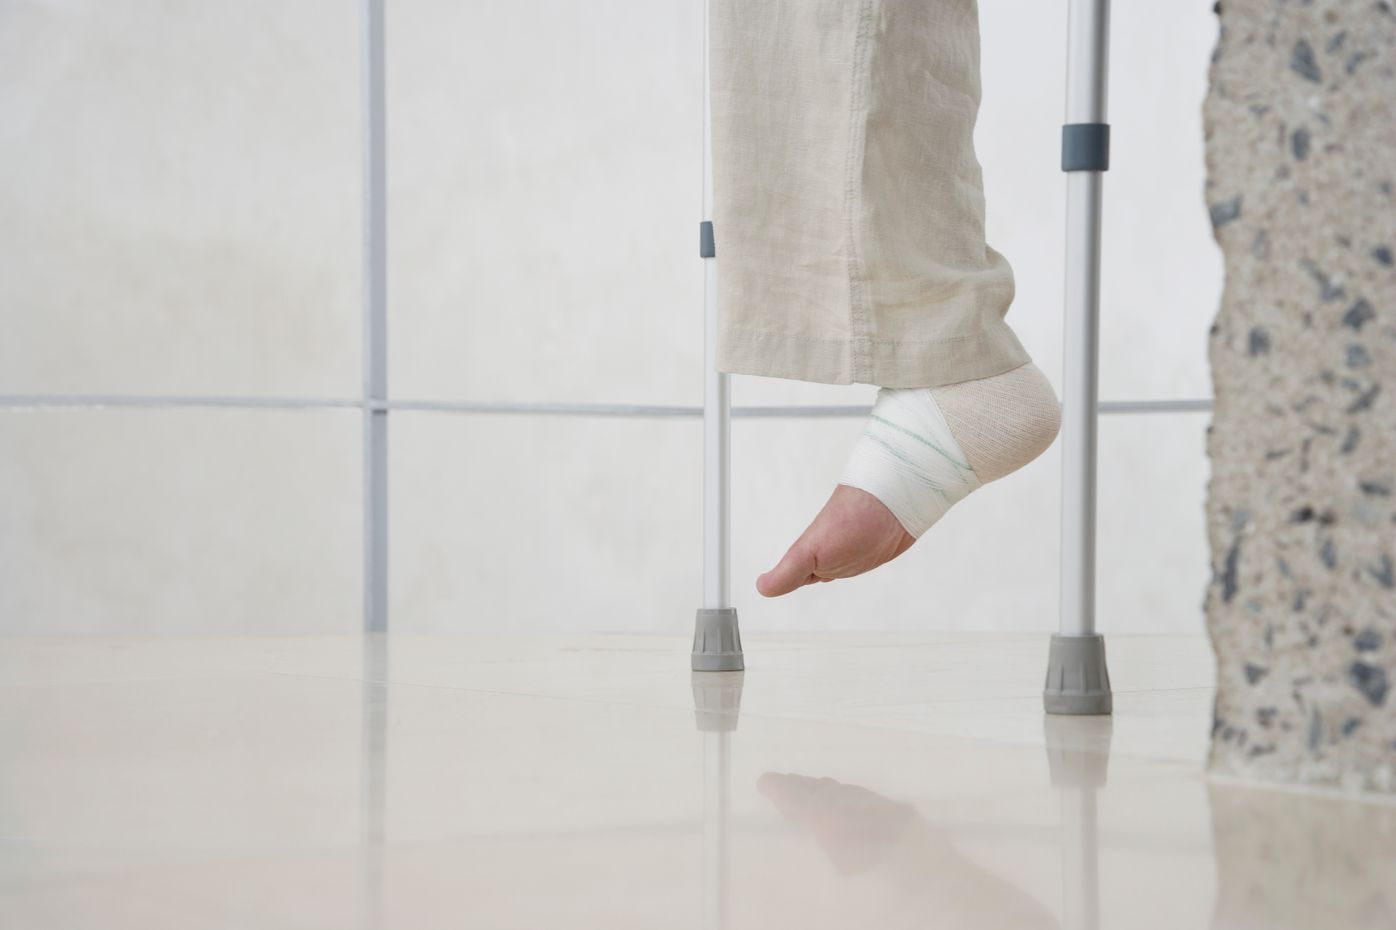 close-up picture of bandaged foot hovering over floor, next to crutches and a stone wall.